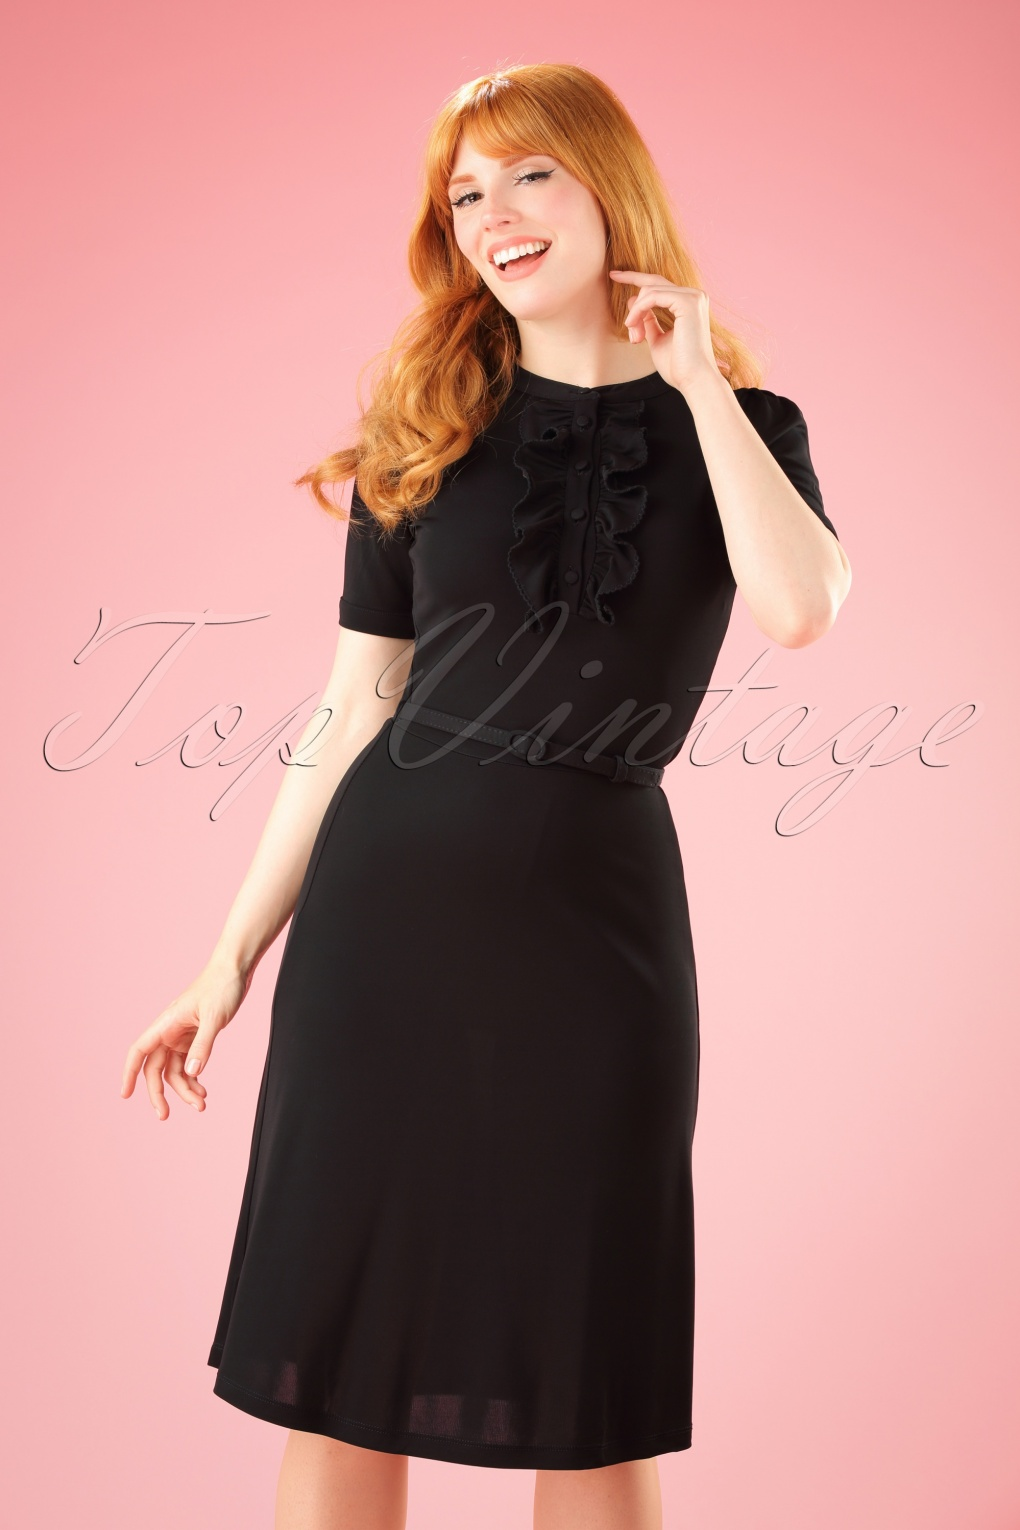 Vintage Inspired Cocktail Dresses, Party Dresses 60s Gaya Swan Dress in Black £104.91 AT vintagedancer.com